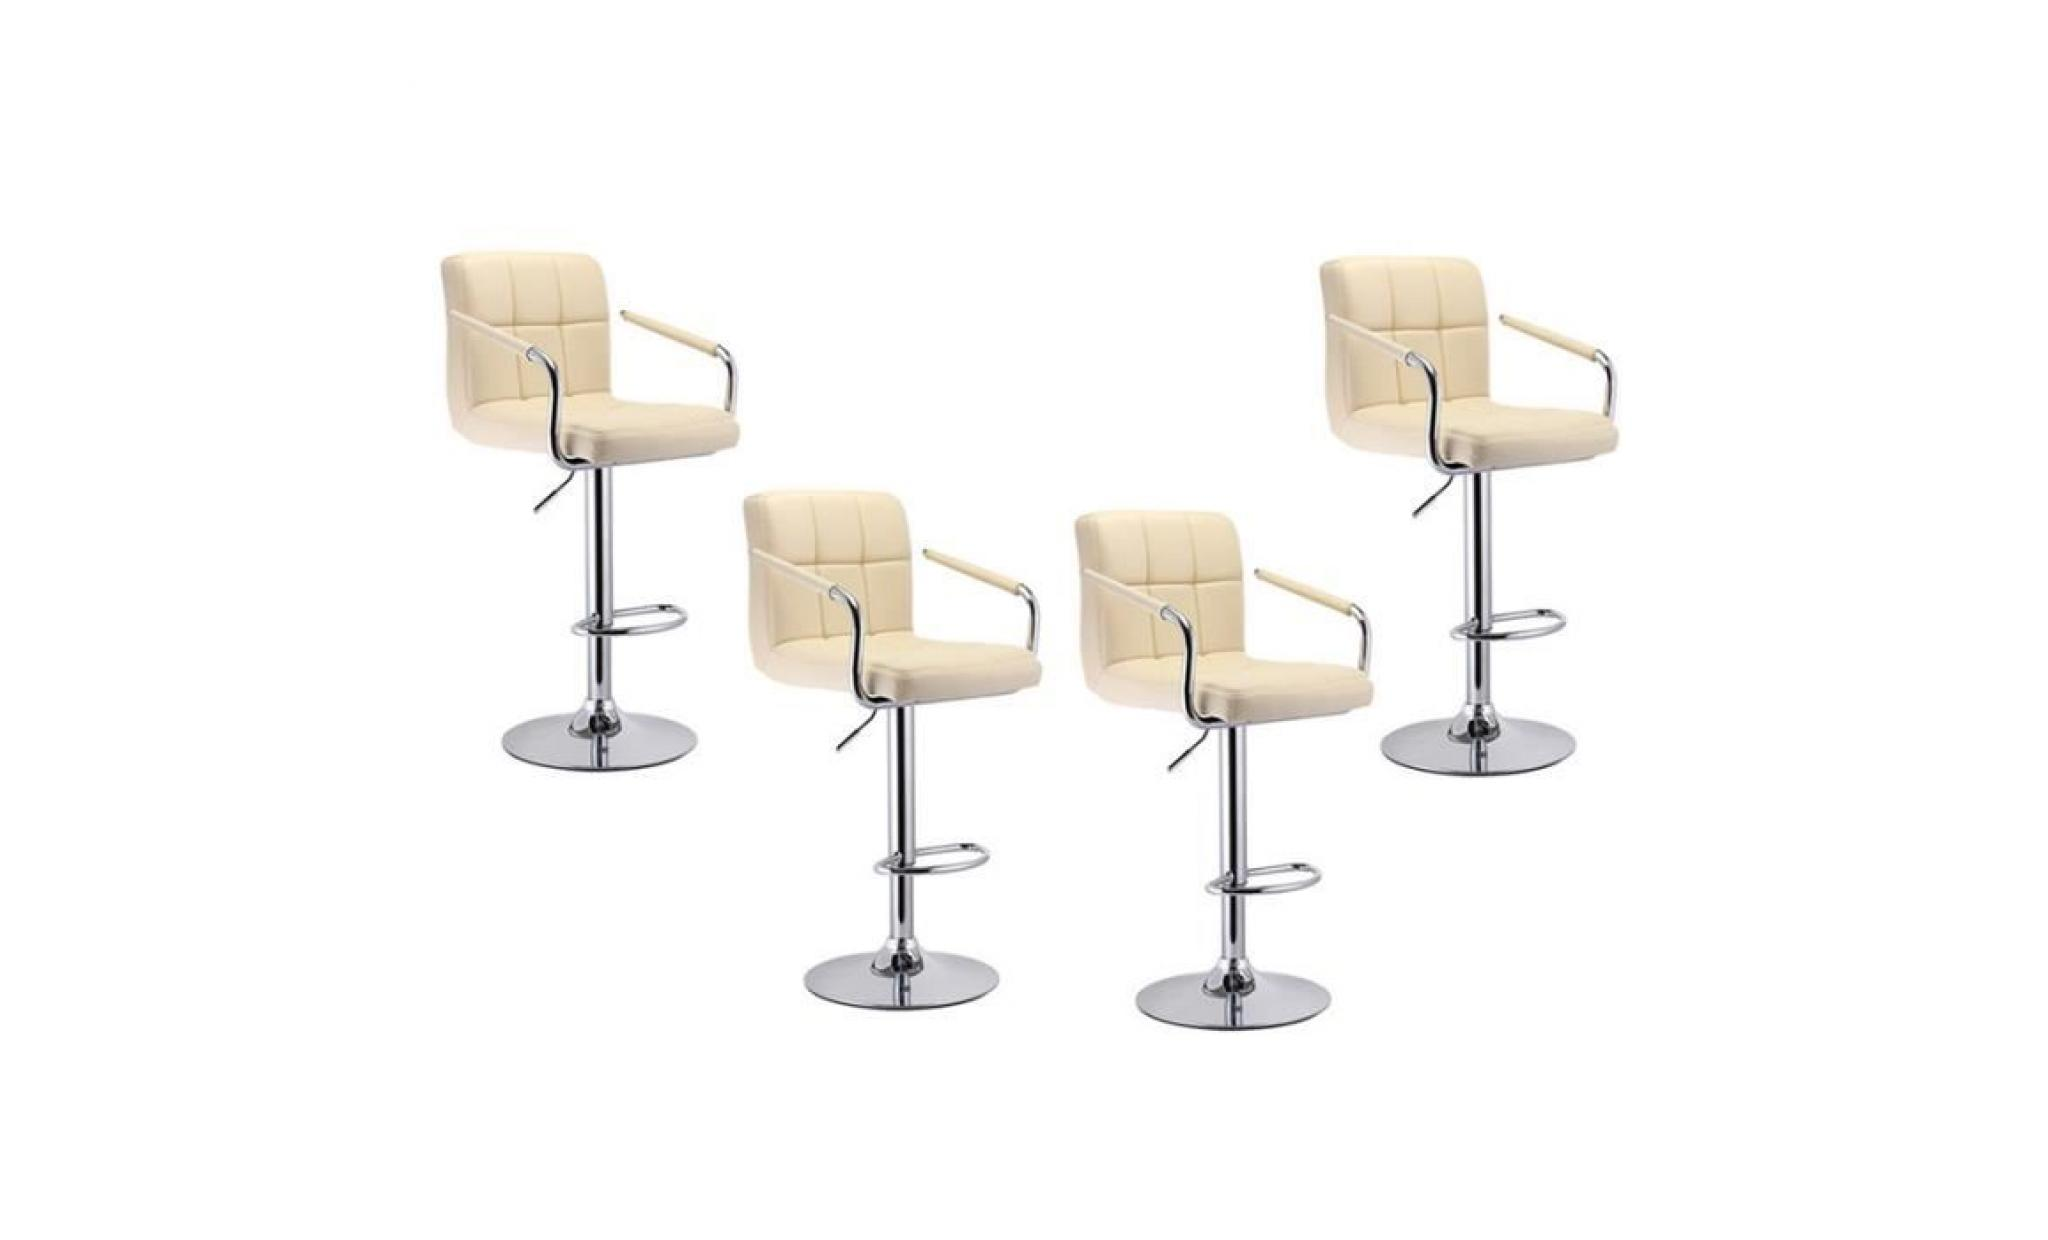 Tabouret De Bar Lot De 4 Tabouret De Bar Design Chaise De Bar Noir Achat Vente Tabouret Pas Cher Couleur Et Design Fr